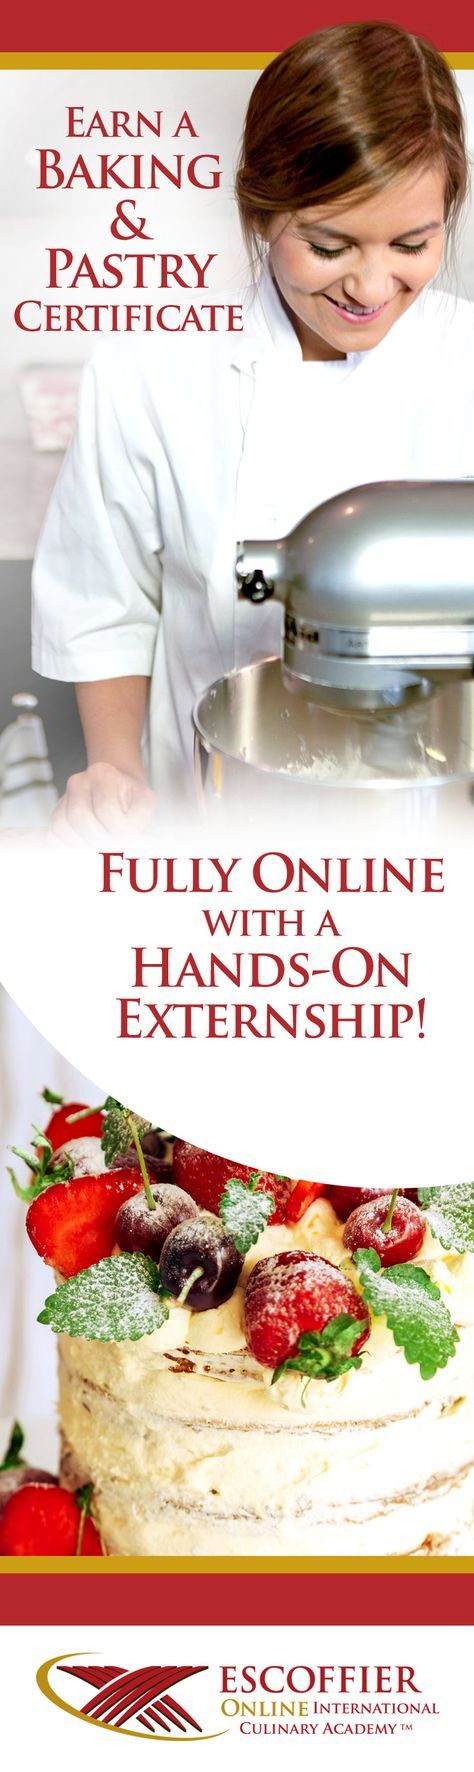 Carreer 4 vision board pinterest chef school baking courses cake decorating confiserie and frozen desserts management by menu and so much more earn a baking pastry certificate fully online with a hands on 1betcityfo Images